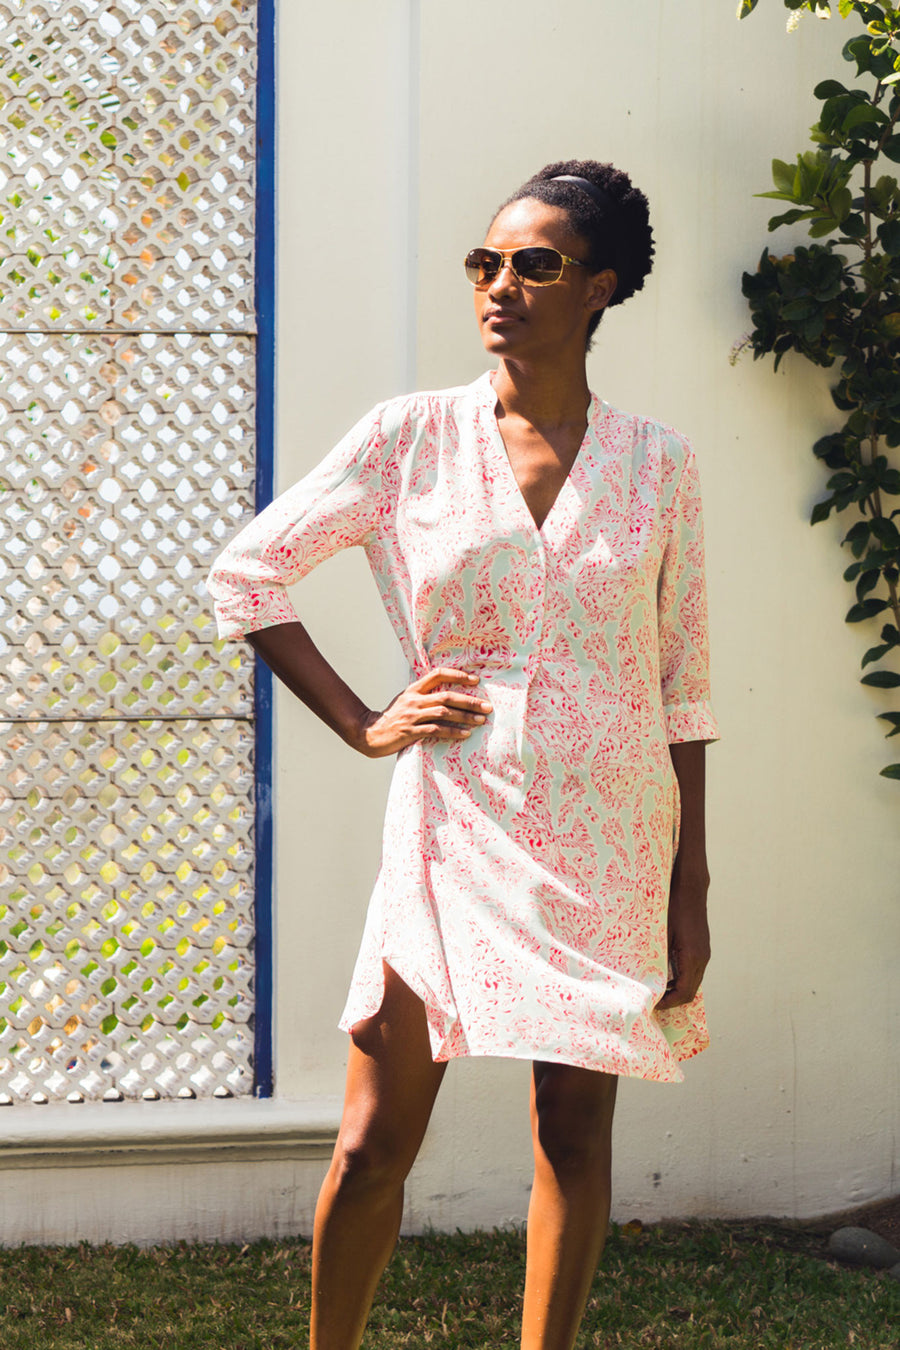 Flared Silk Dress, Crepe-de-Chine : SEAHORSE - PINK designer Lotty B Mustique luxury Resort wear & summer style